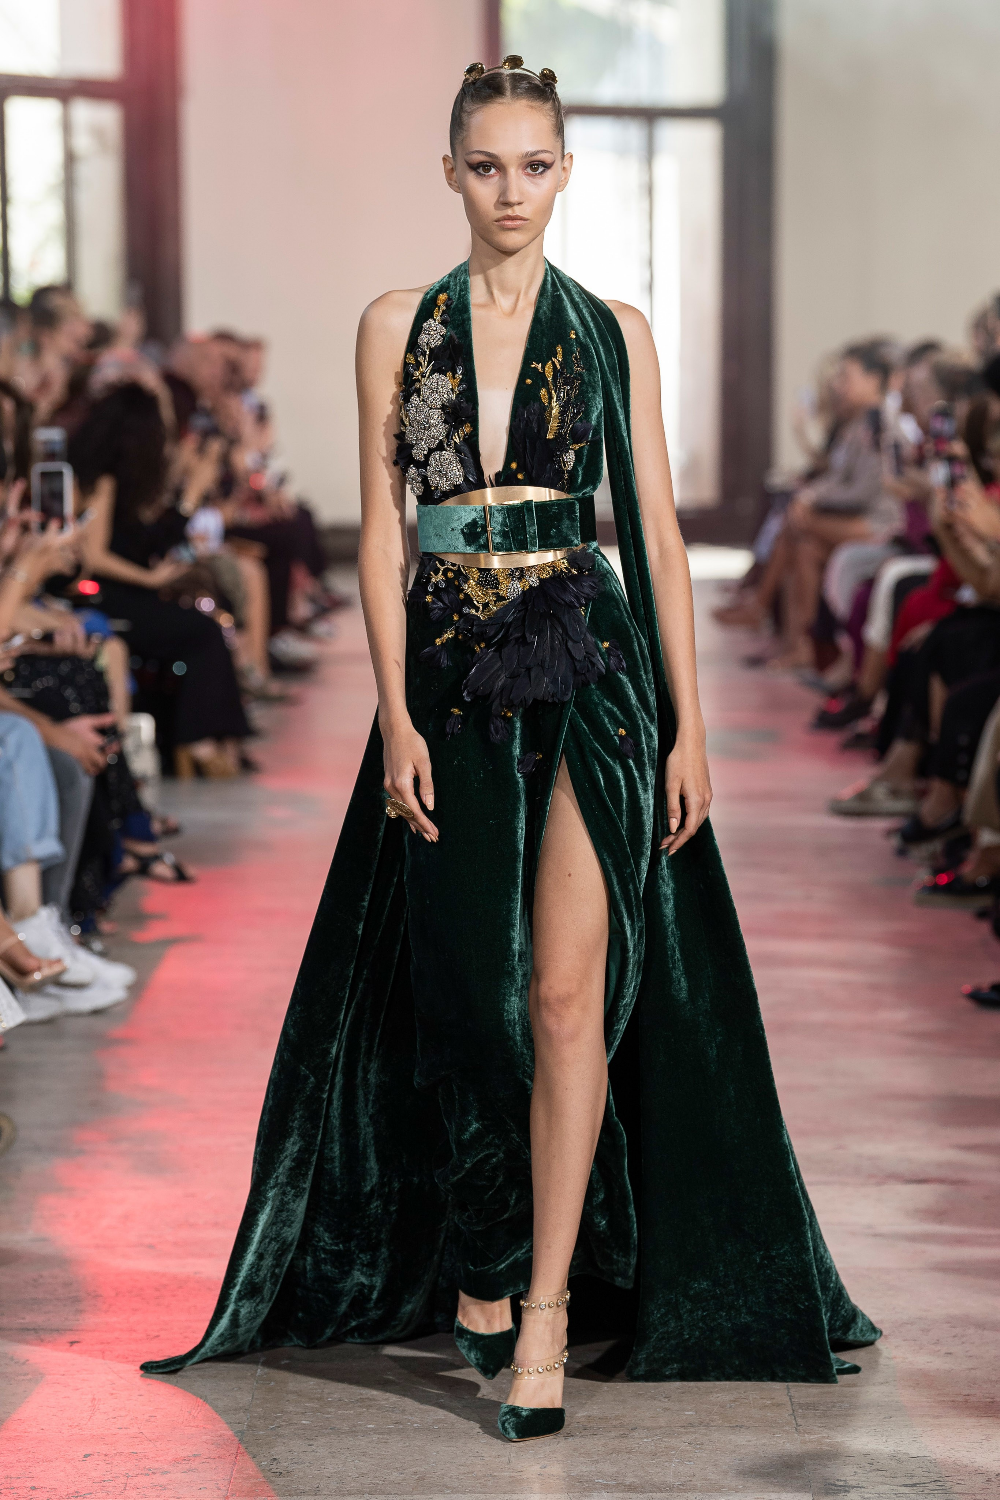 Elie Saab Fall 2019 Couture Collection Vogue Elie Saab Couture Elie Saab Fall Couture Fashion